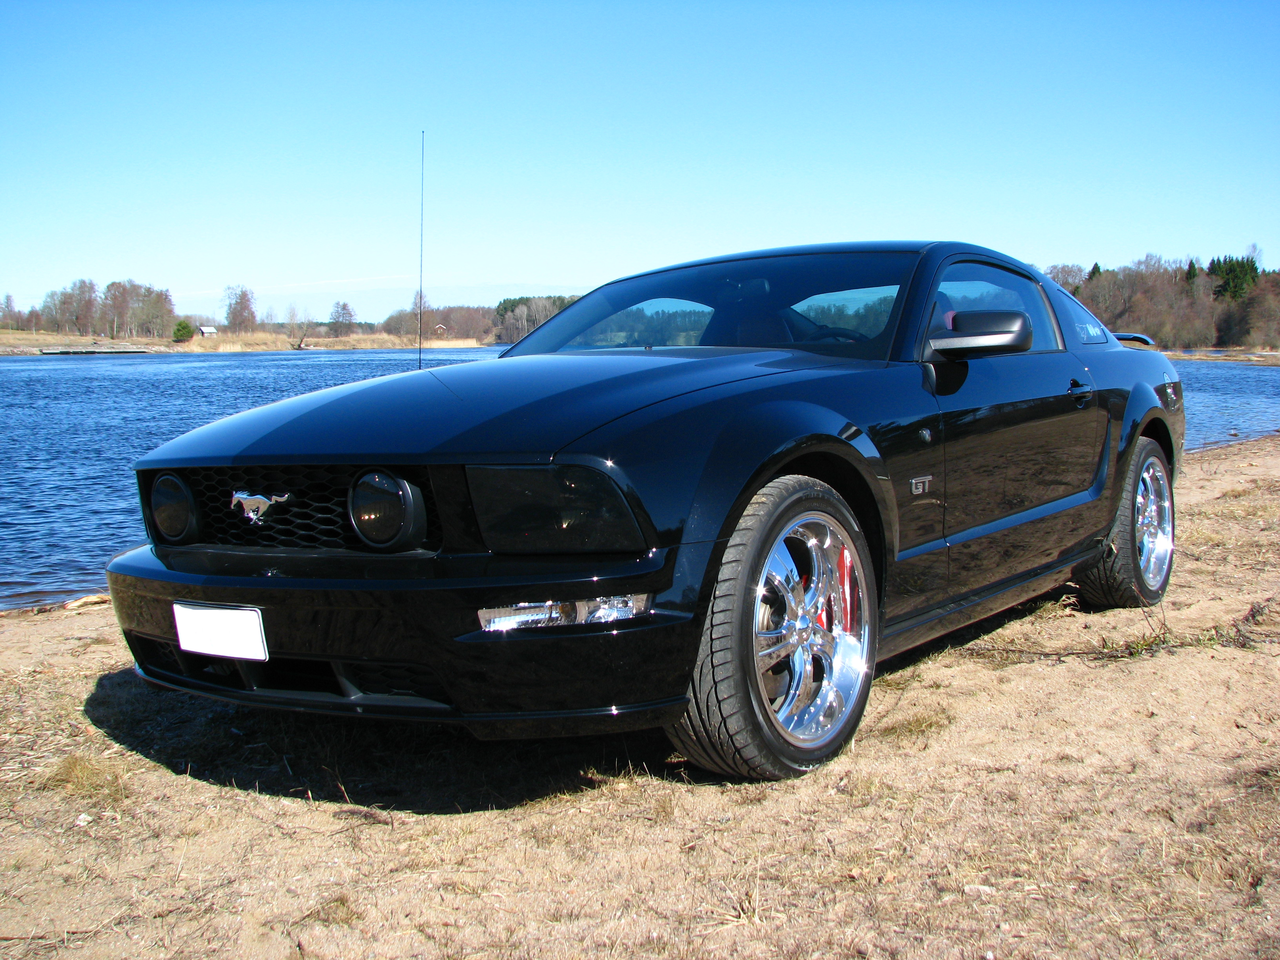 file ford mustang gt 2005 wikimedia commons. Black Bedroom Furniture Sets. Home Design Ideas